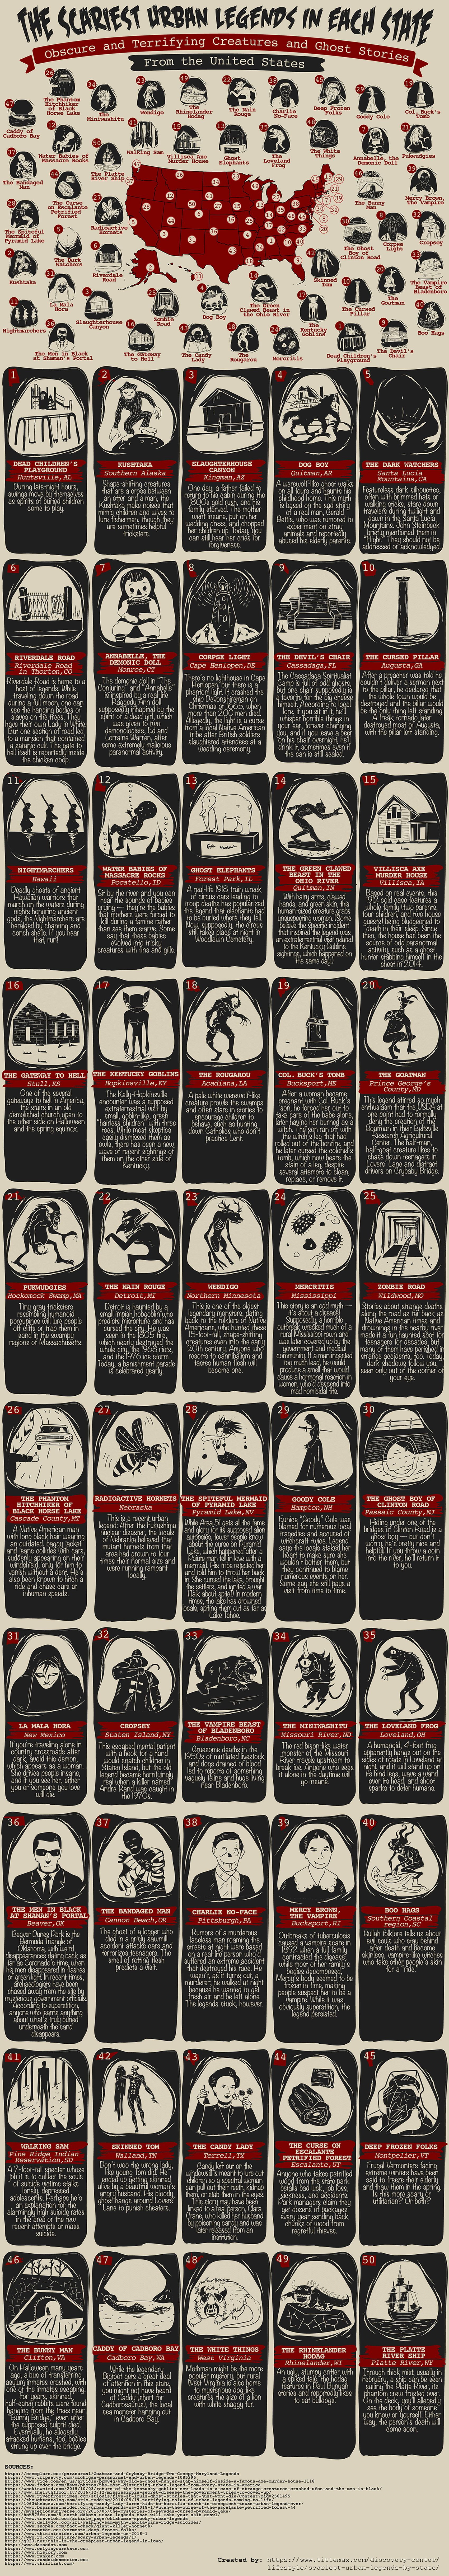 Scariest Urban Legends in Each US State